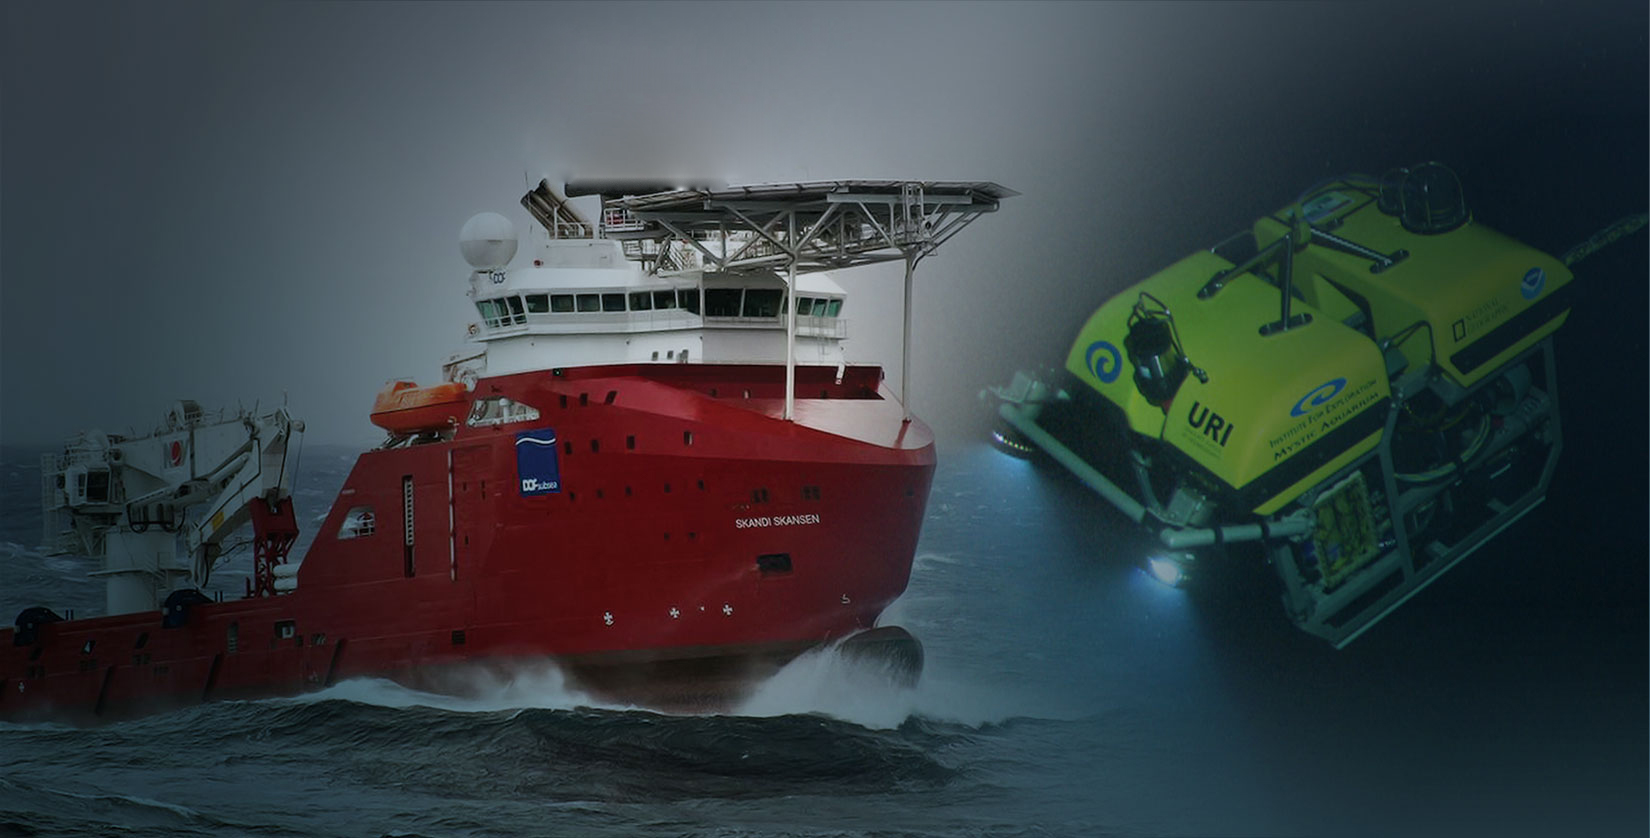 SAExploration's vessels are supplied survey-ready to meet geophysical industry standards for 4D-Grade data recording